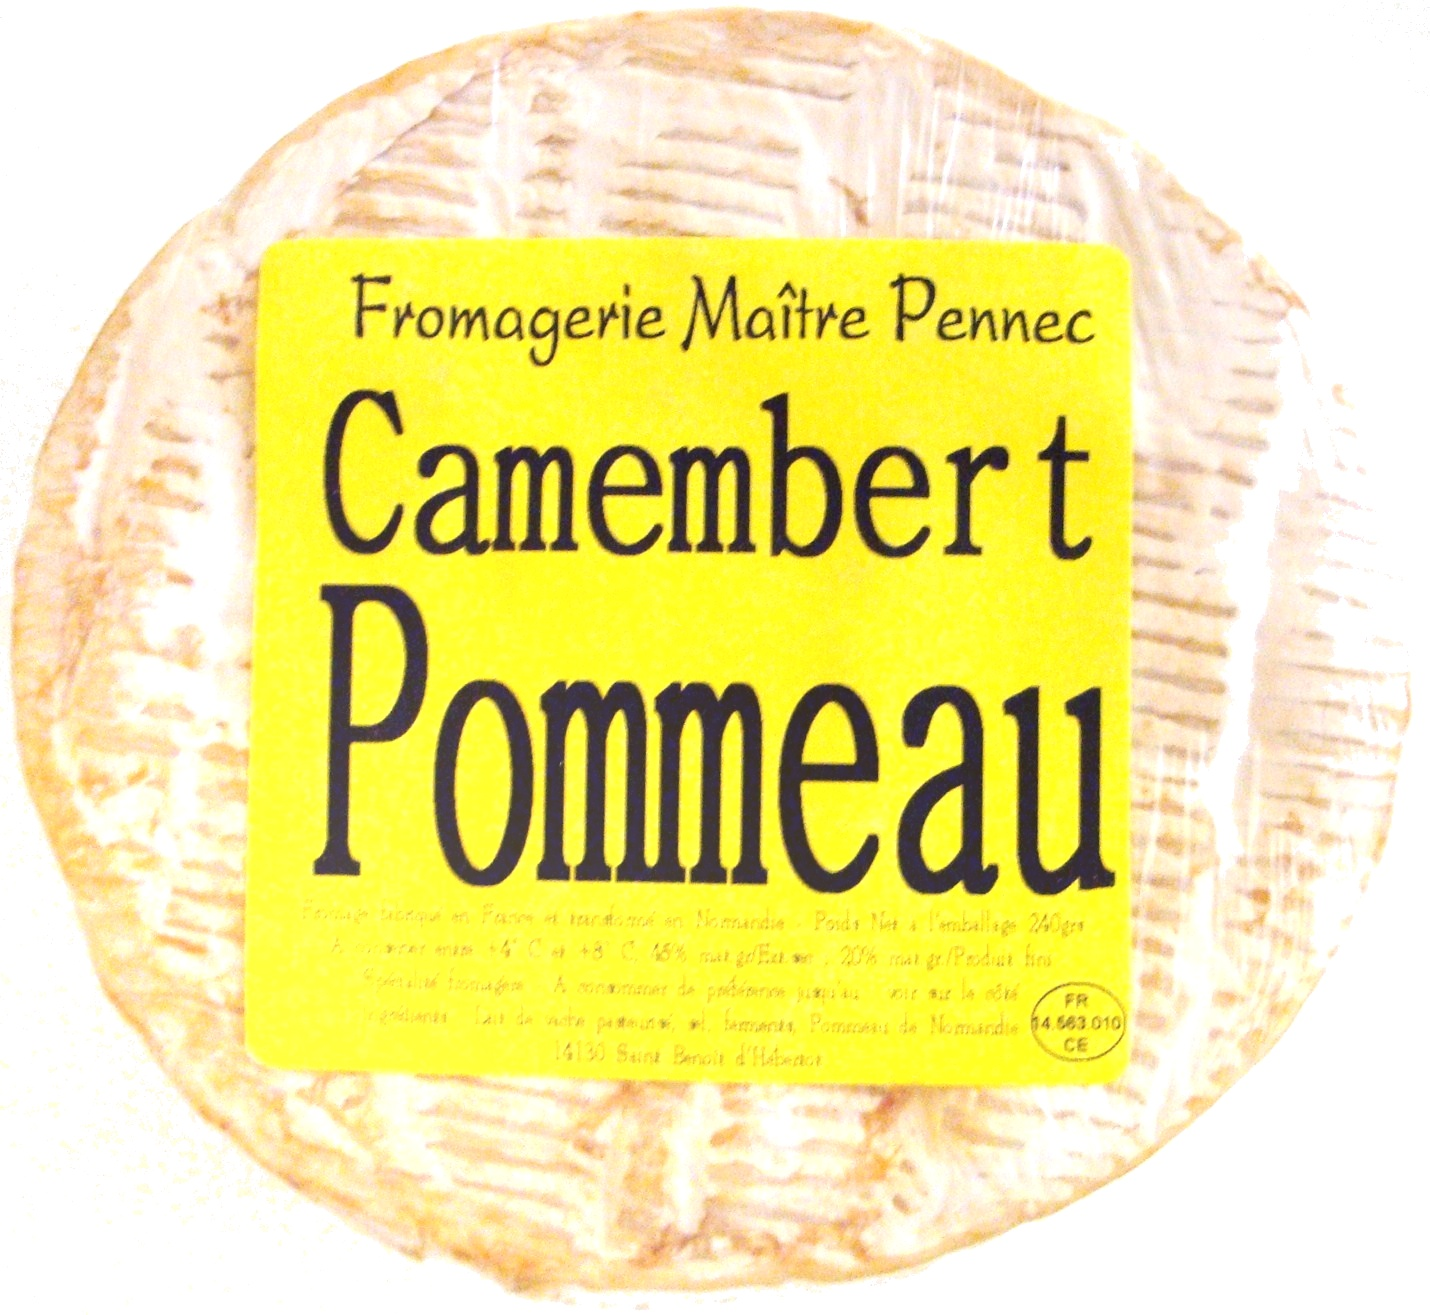 Camembert (20% MG) Pommeau - Product